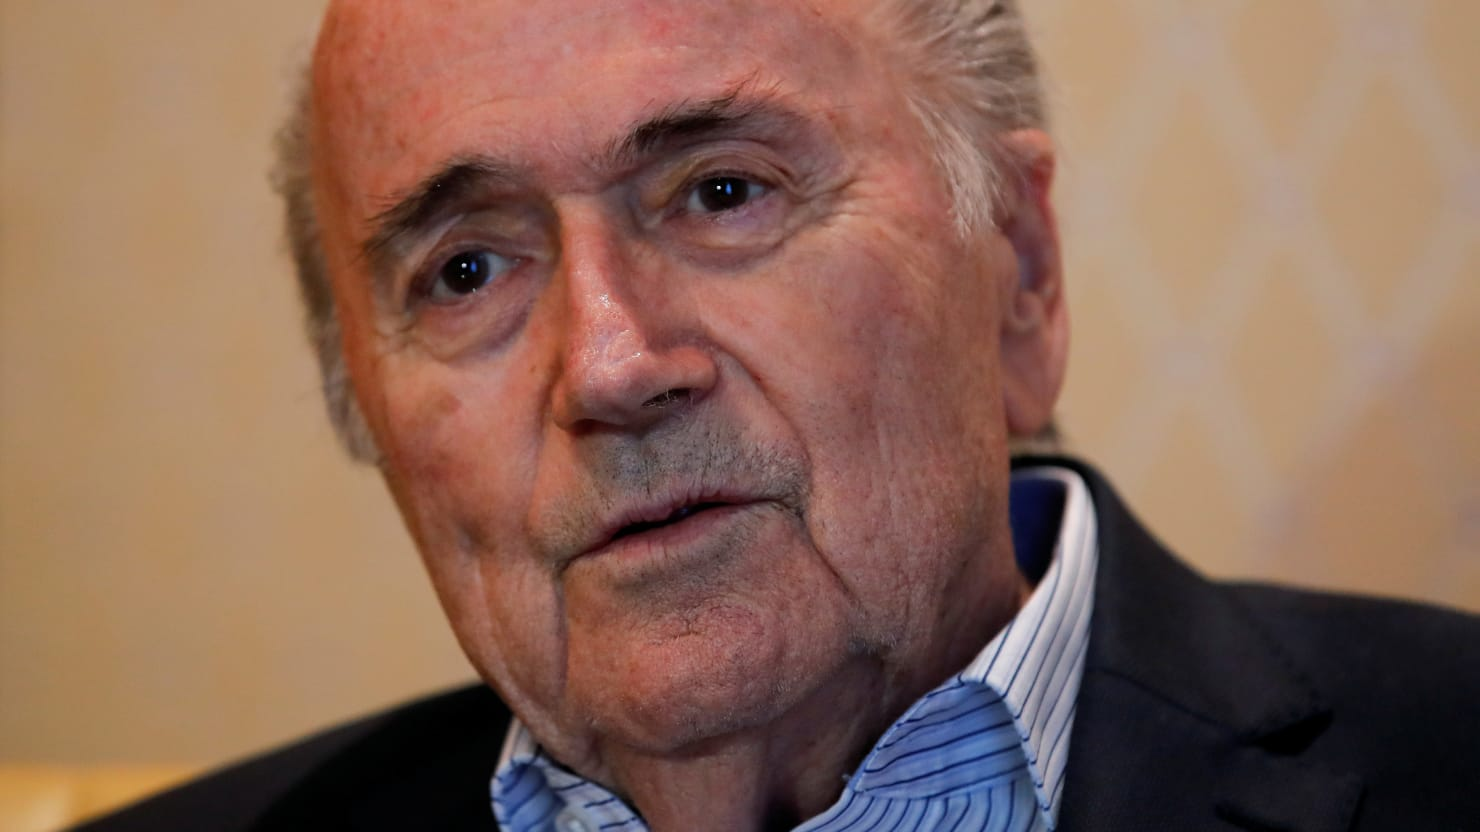 Ex-FIFA President Sepp Blatter Claims Organization Won't Give Back Luxury Watches Left in His Old Office